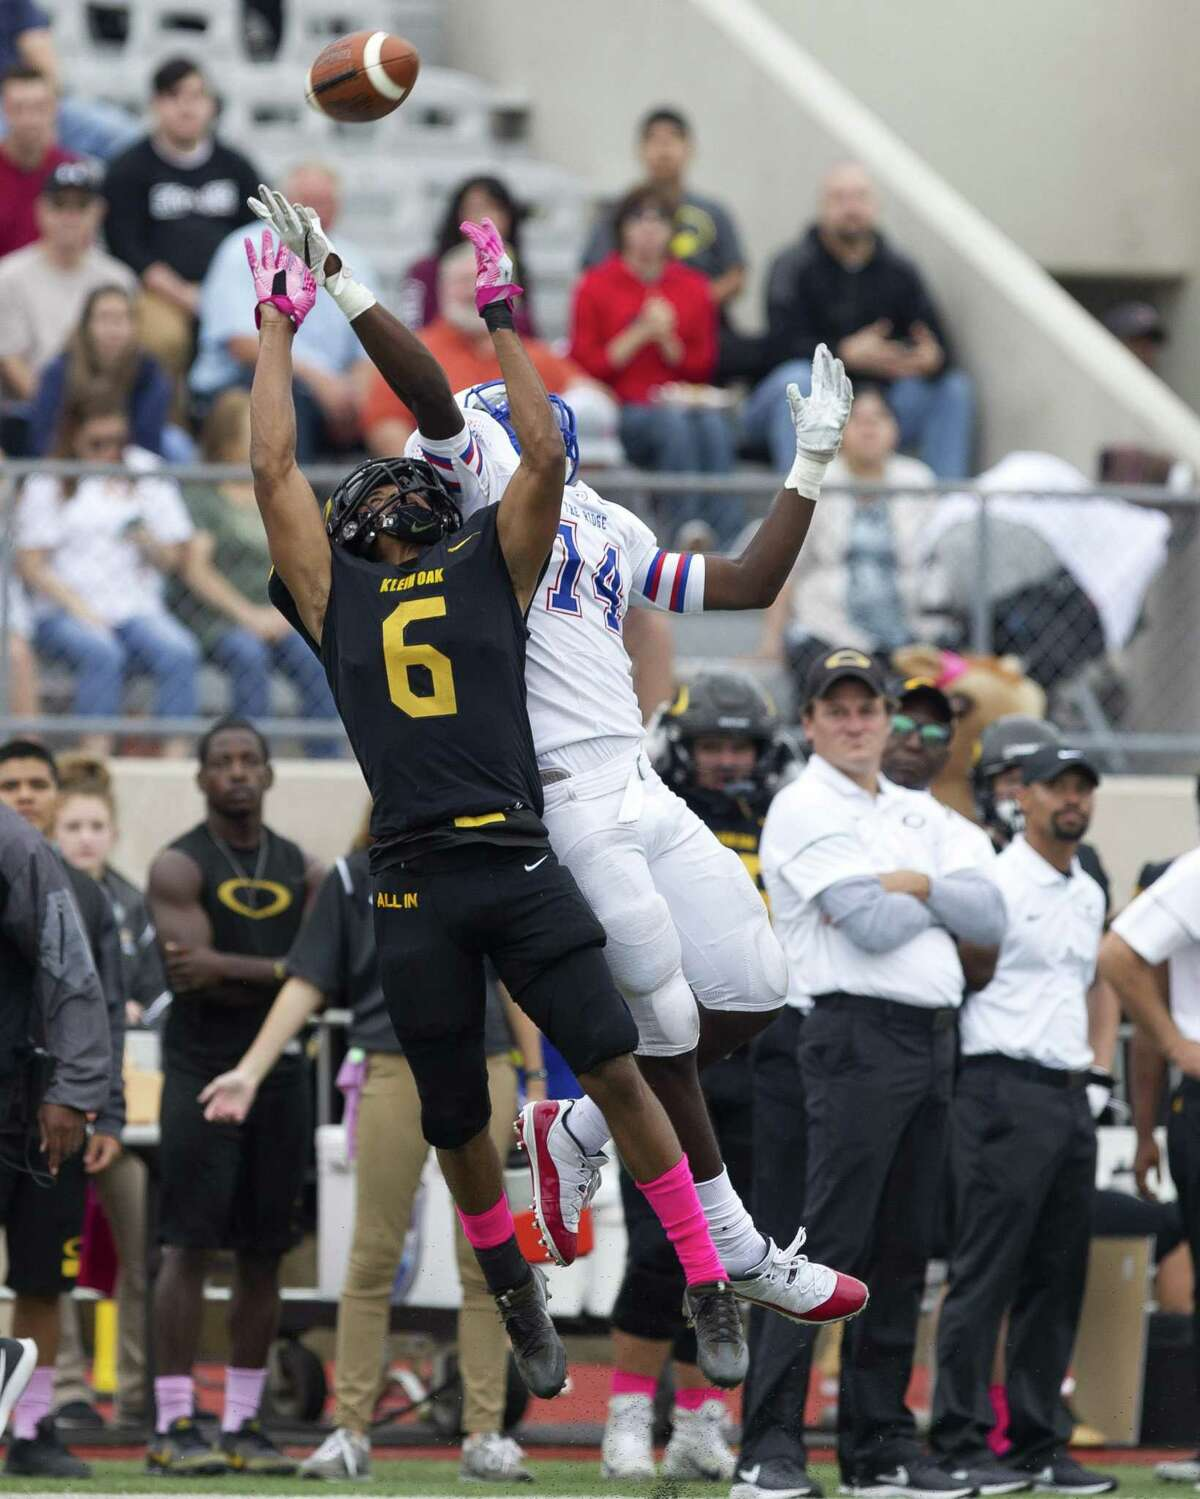 Klein Oak strong safety Christopher Satterfield (6) breaks up a pass intended for Oak Ridge wide receiver Rowry Bailey (14) during the second quarter of a District 15-6A high school football game at Klein Memorial Stadium, Saturday, Oct. 20, 2018, in Spring.